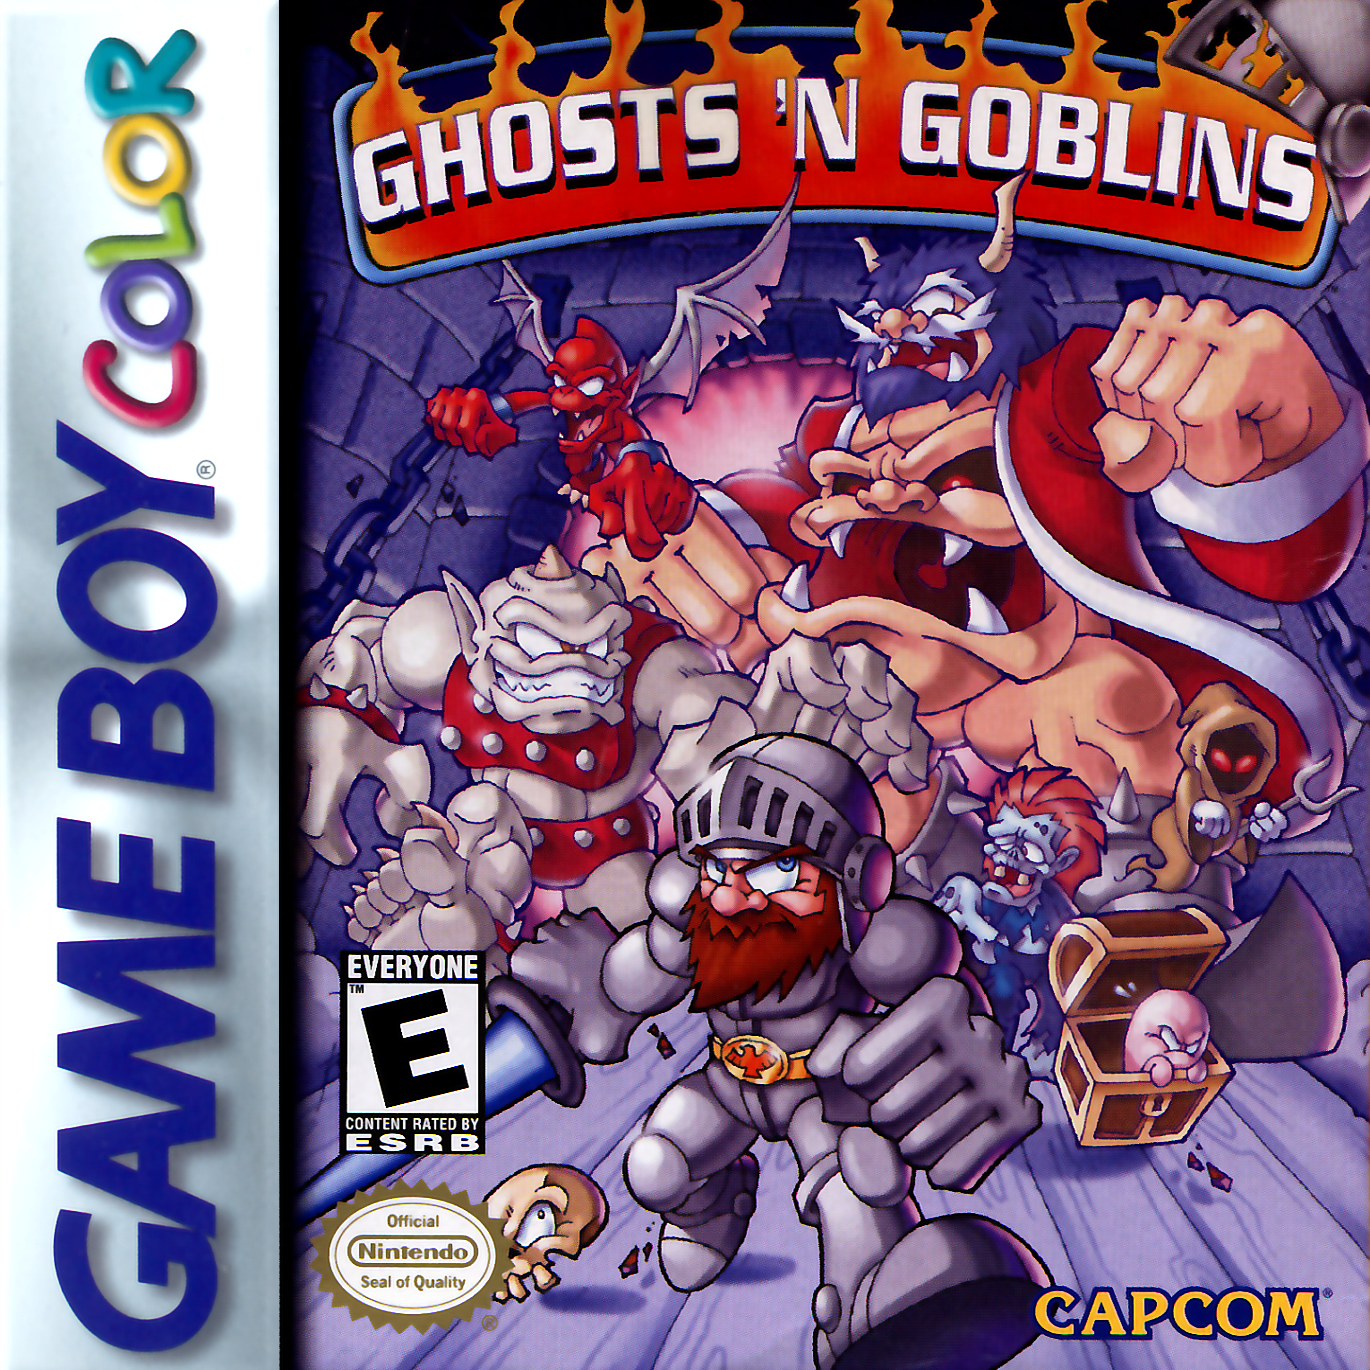 Ghosts'n Goblins Nintendo Game Boy Color cover artwork